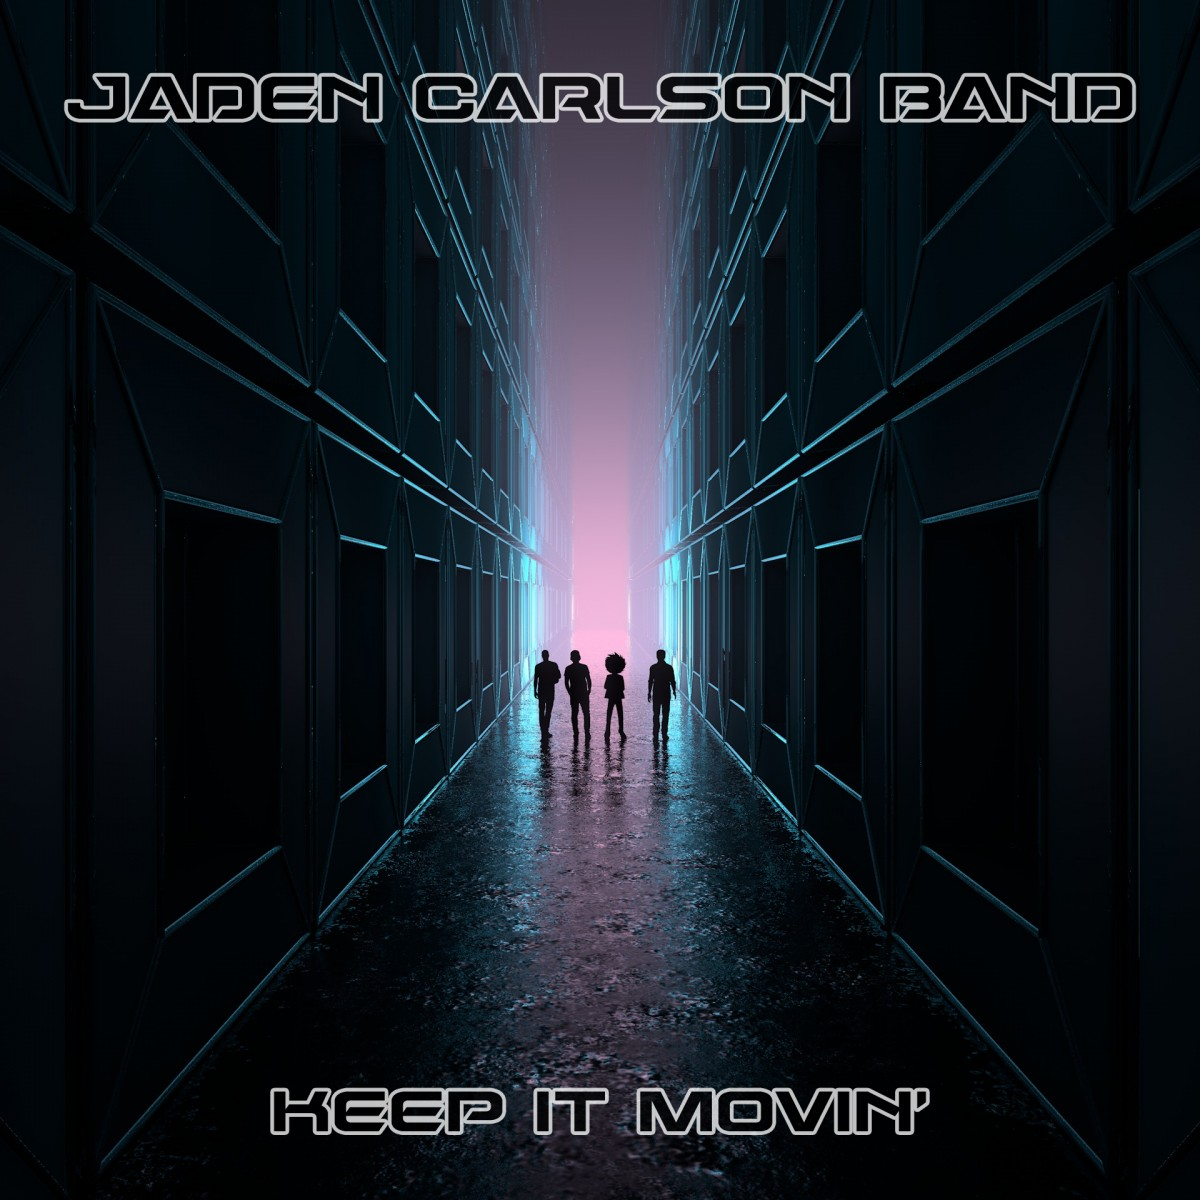 Album Review: Jaden Carlson Band, Keep it Movin